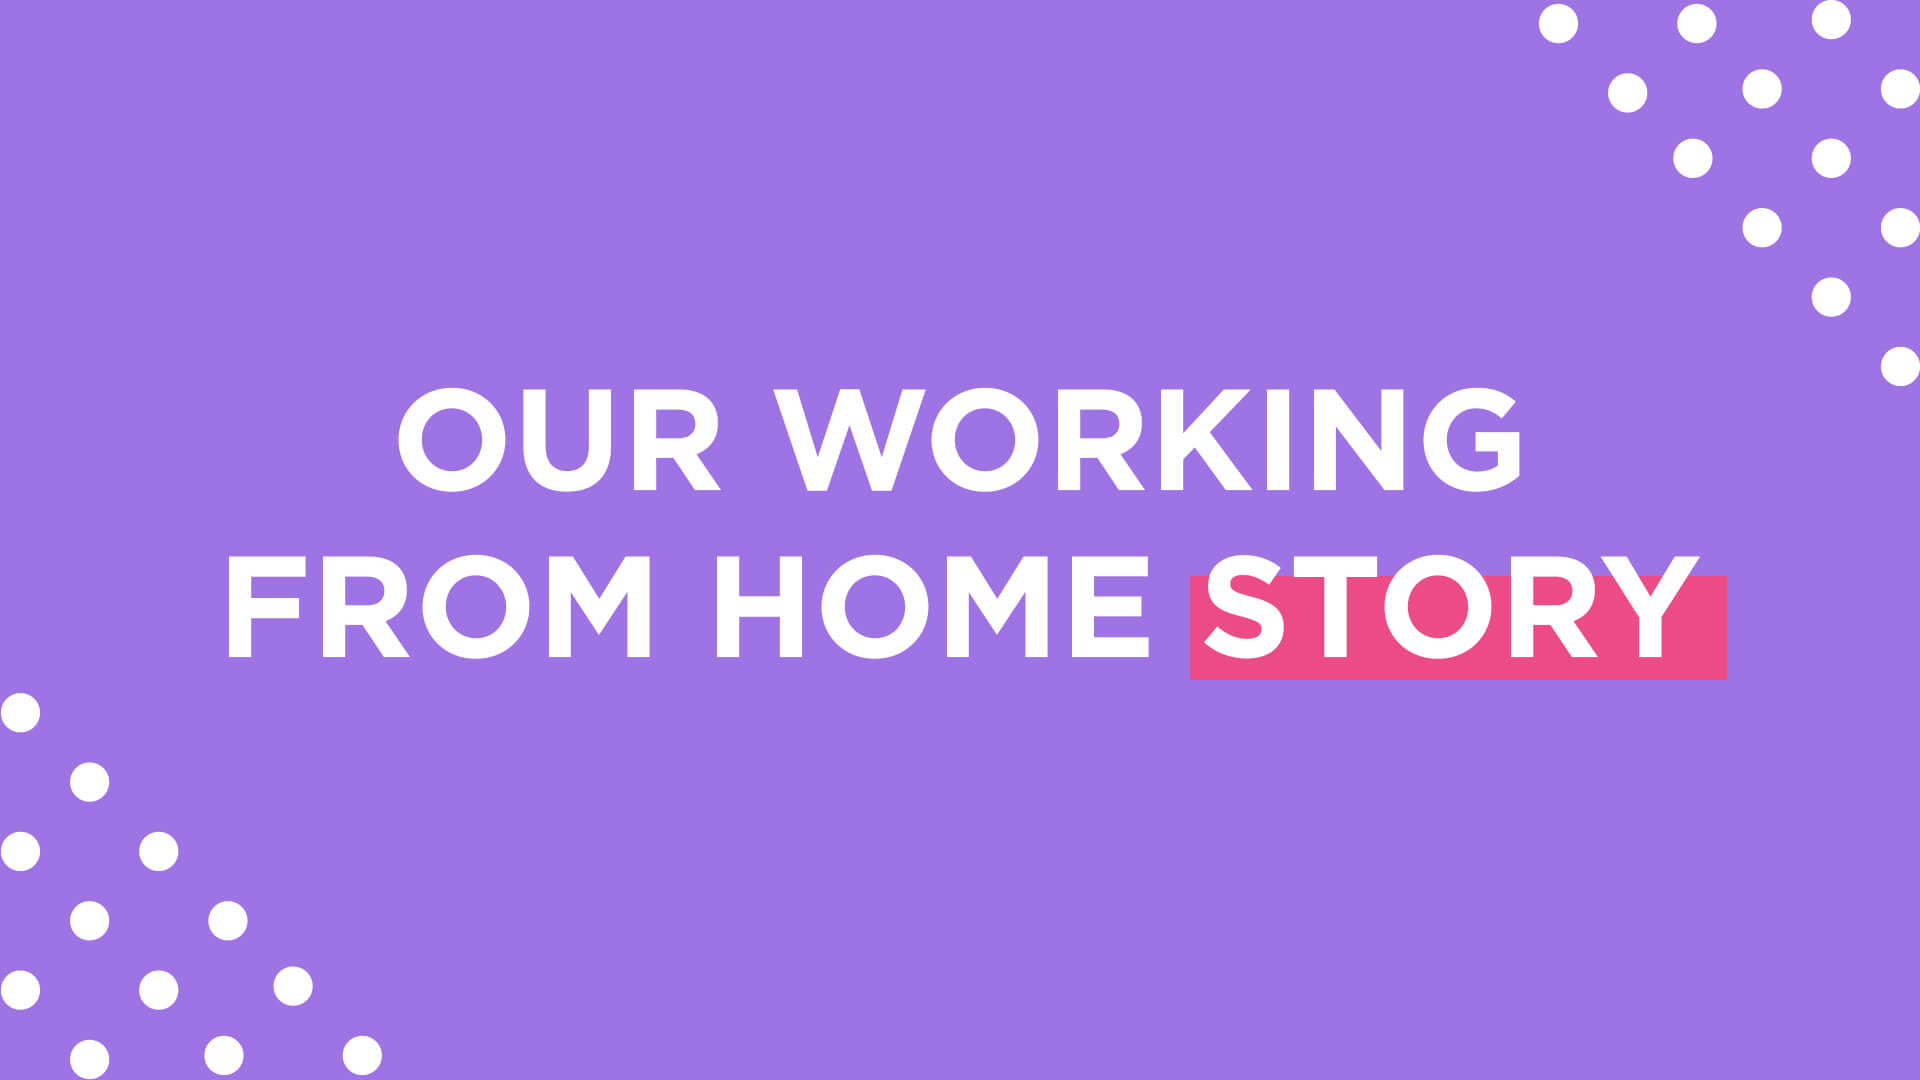 Our Working from Home Story